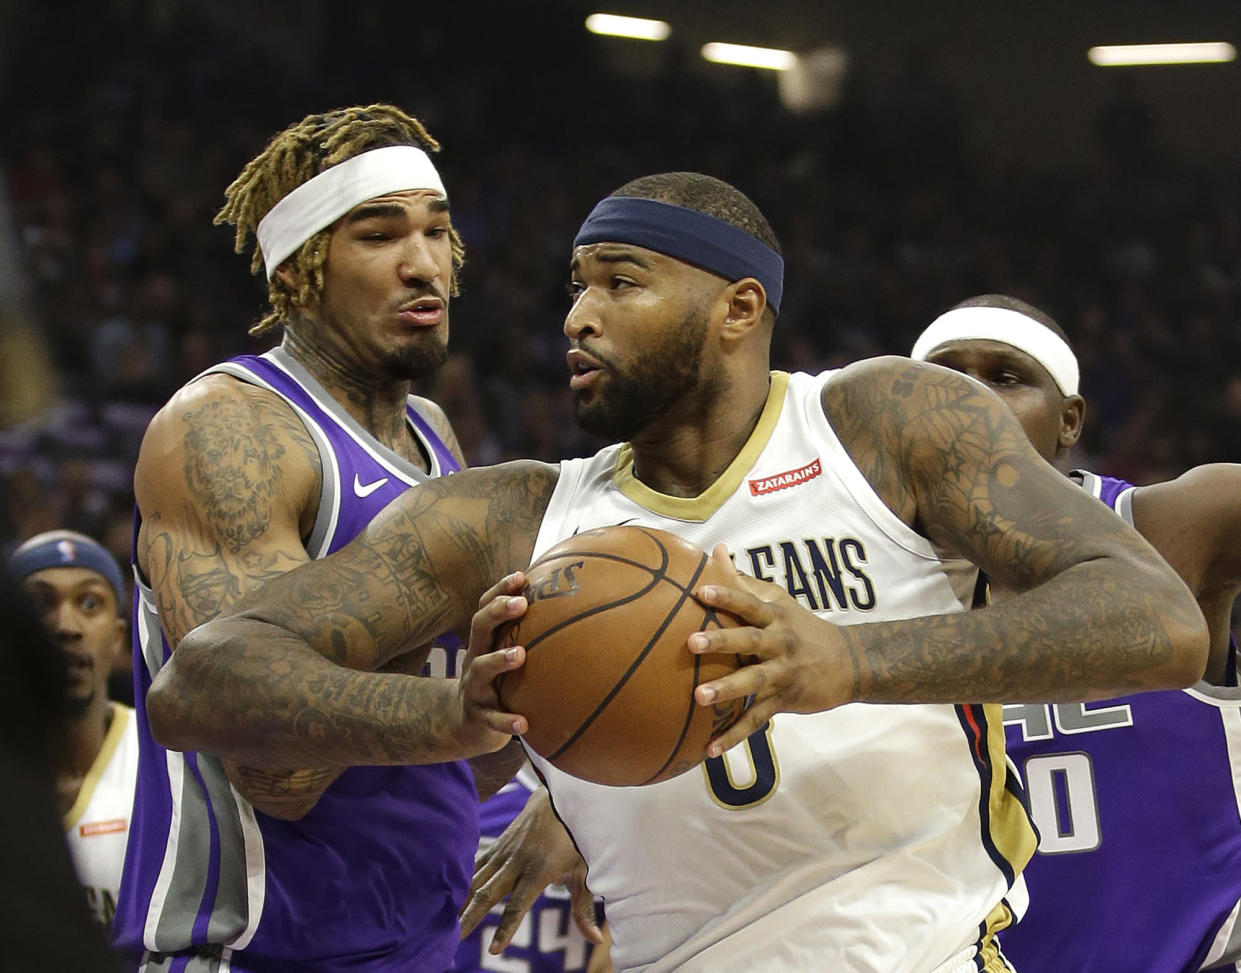 DeMarcus Cousins has offered to pay the funeral cost for Stephon Clark, an unarmed African American who was shot by police while standing in his grandparents' backyard in Sacramento last week. (AP/Rich Pedroncelli)